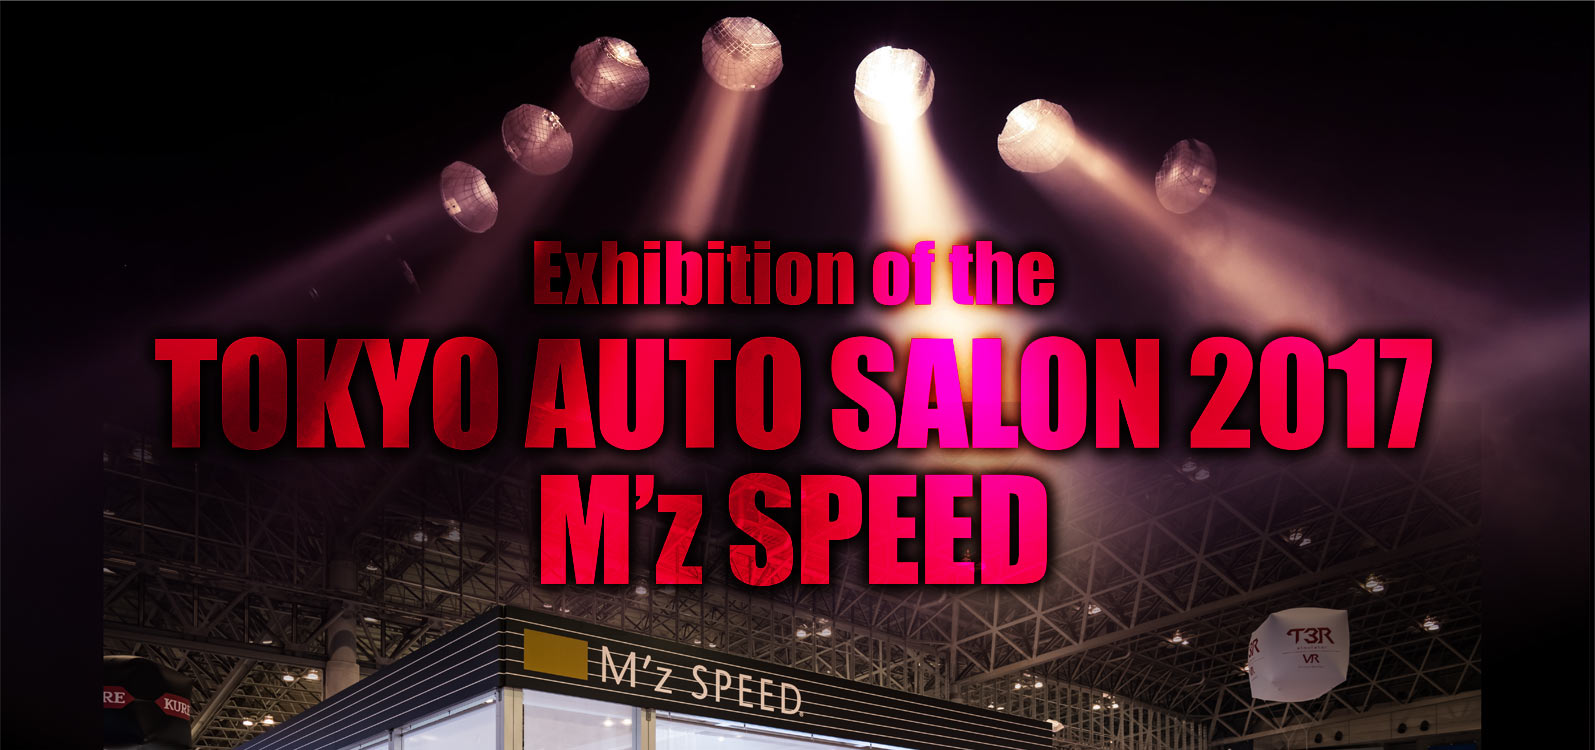 Exhibition of the TOKOYO AUTO SALON 2017 M'z SPEED